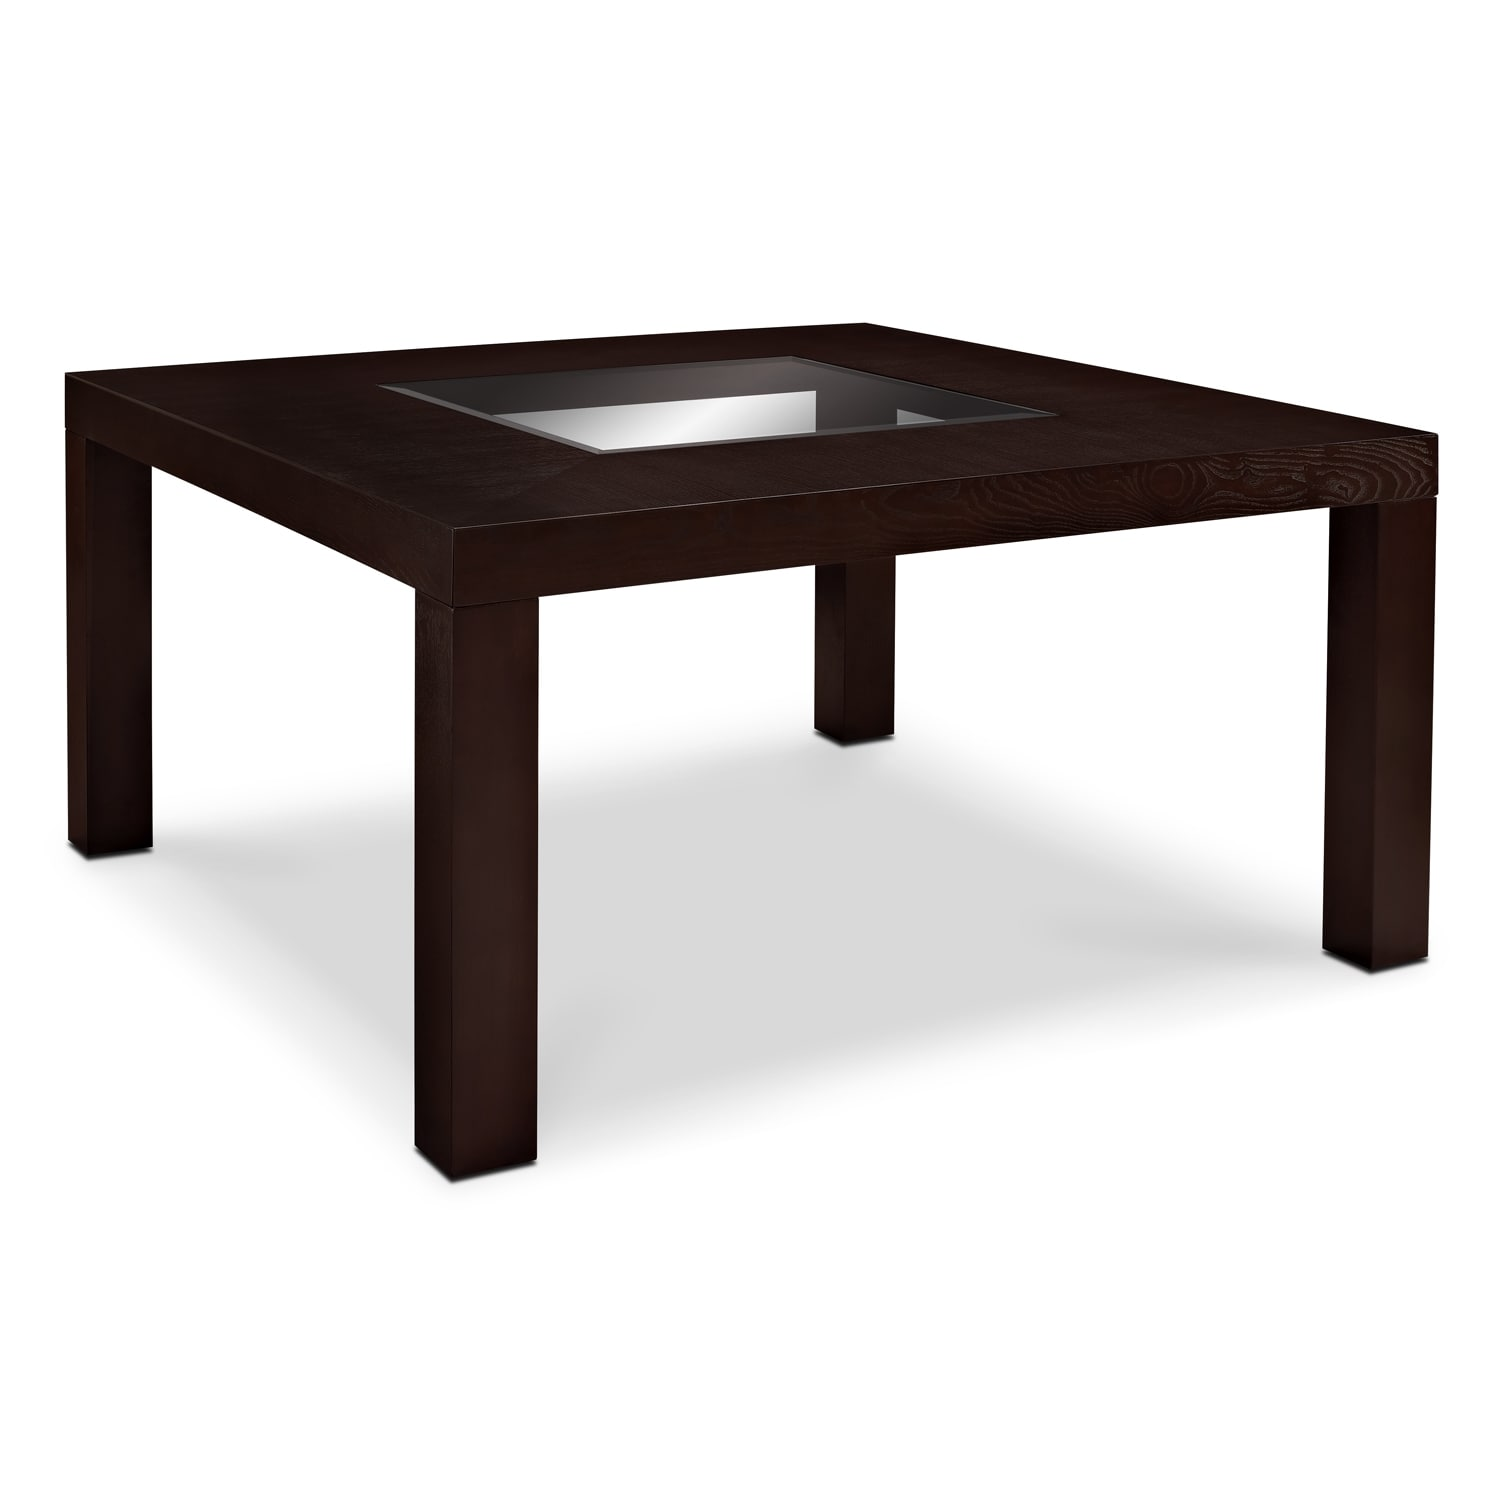 square-dining-table-category-image